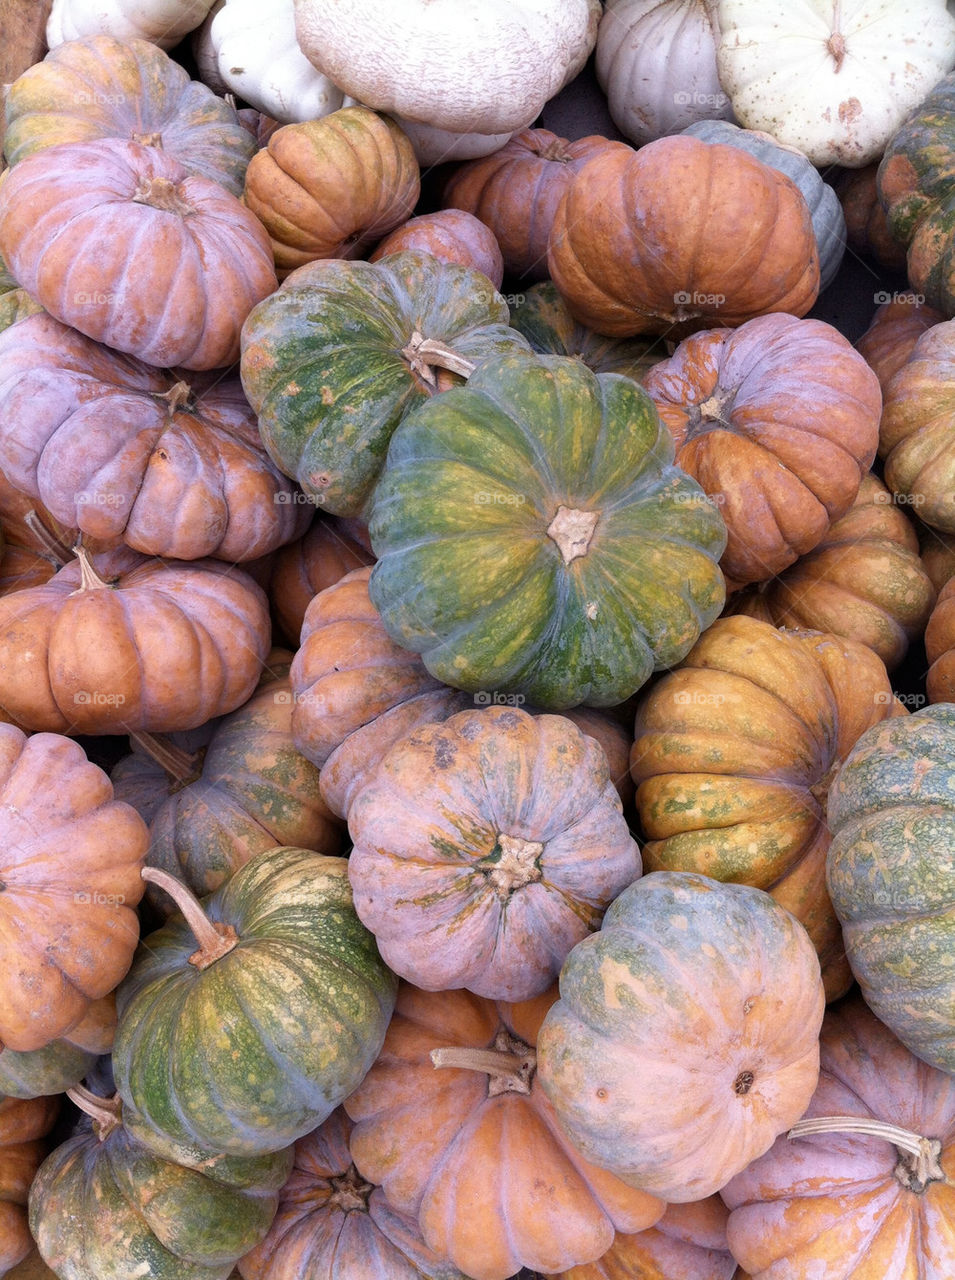 A variety of pumpkins during autumn.